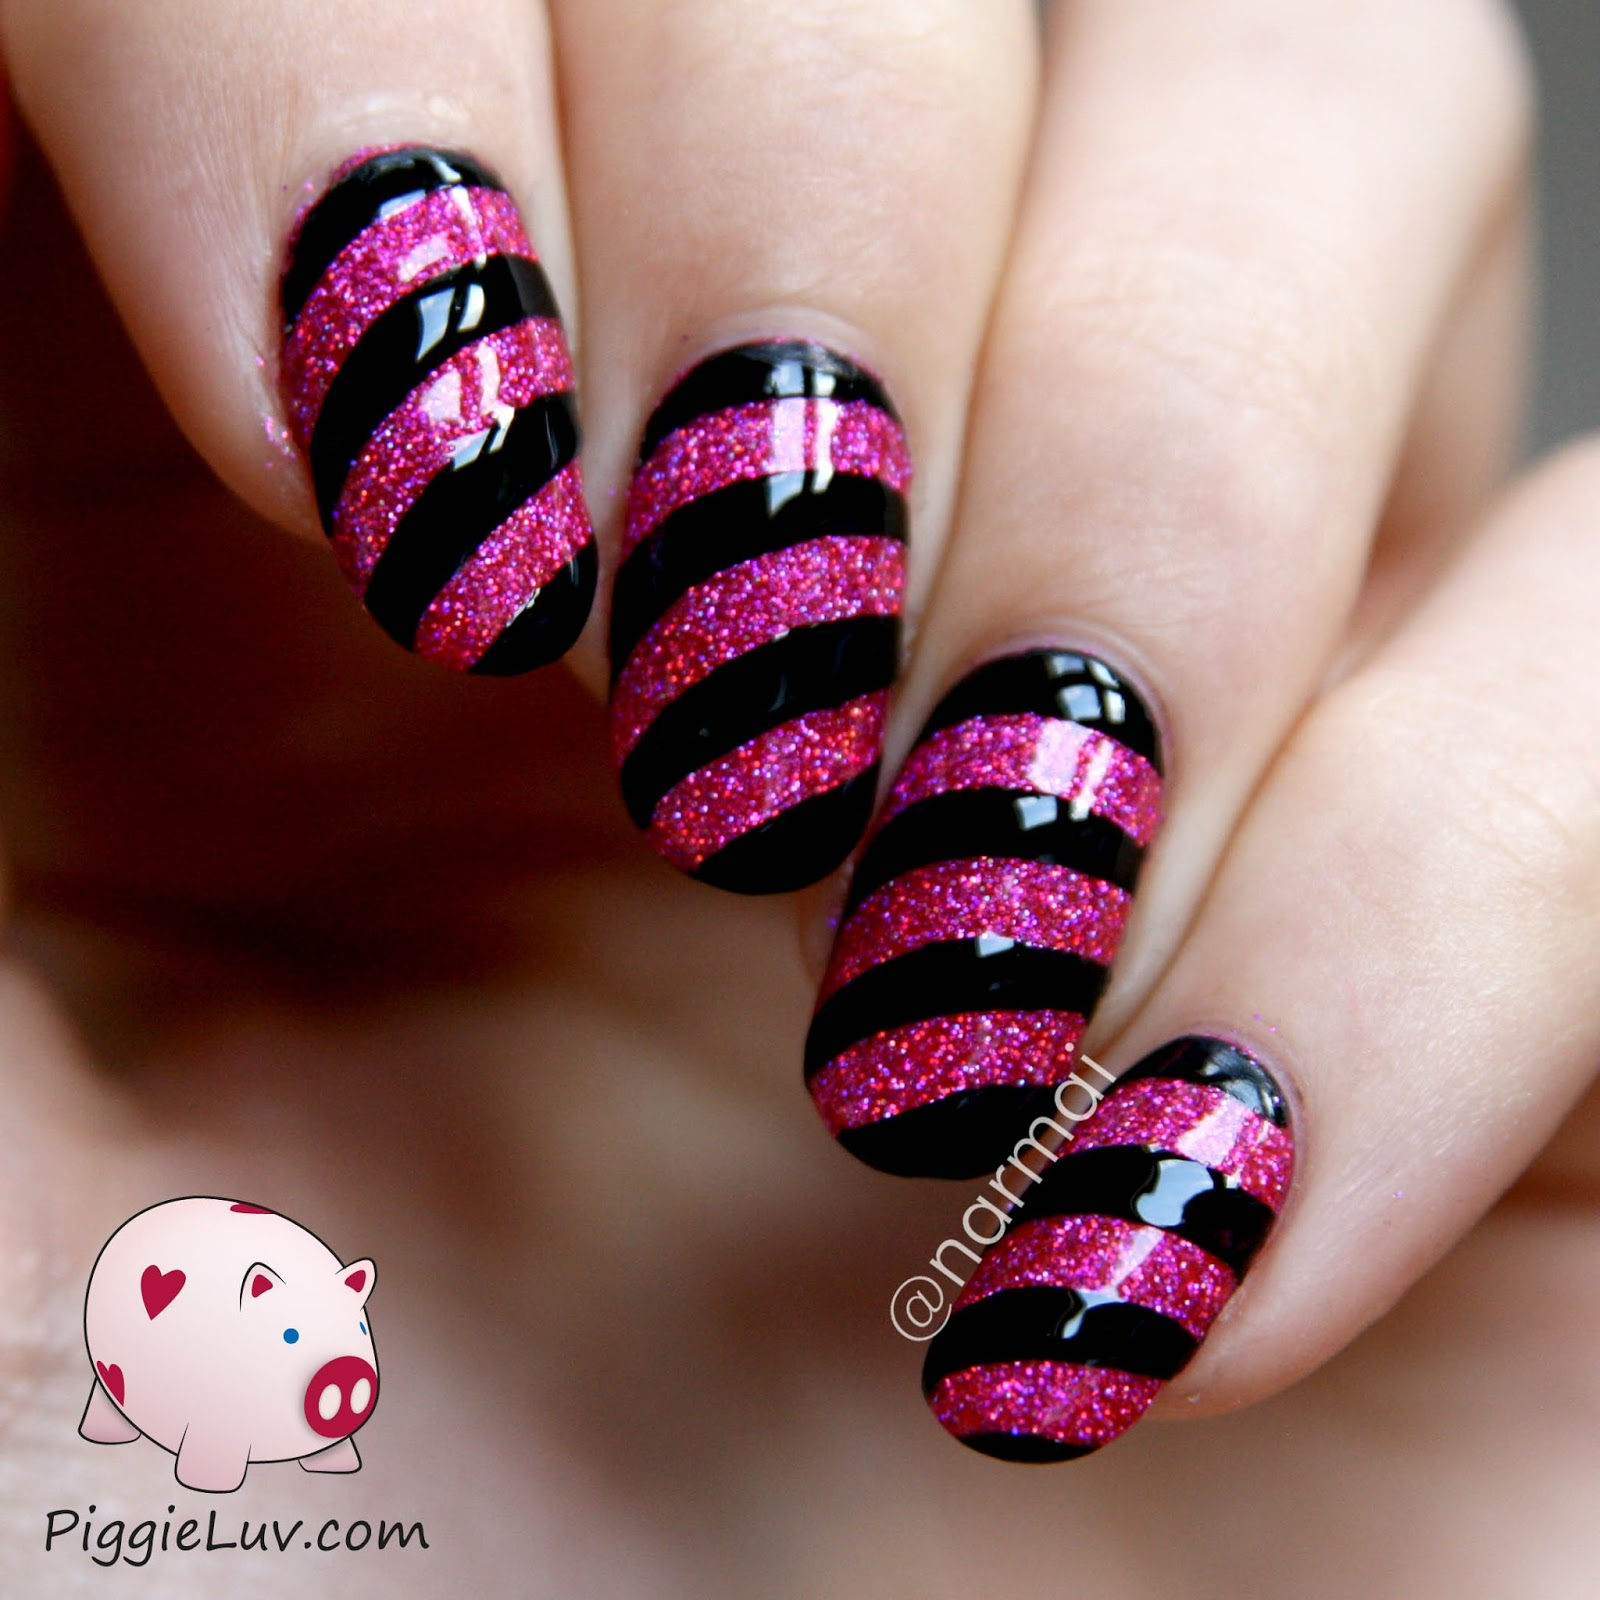 Girly Nail Art: PiggieLuv: Sparkly Nails With Girly Bits Razzle Dazzle And